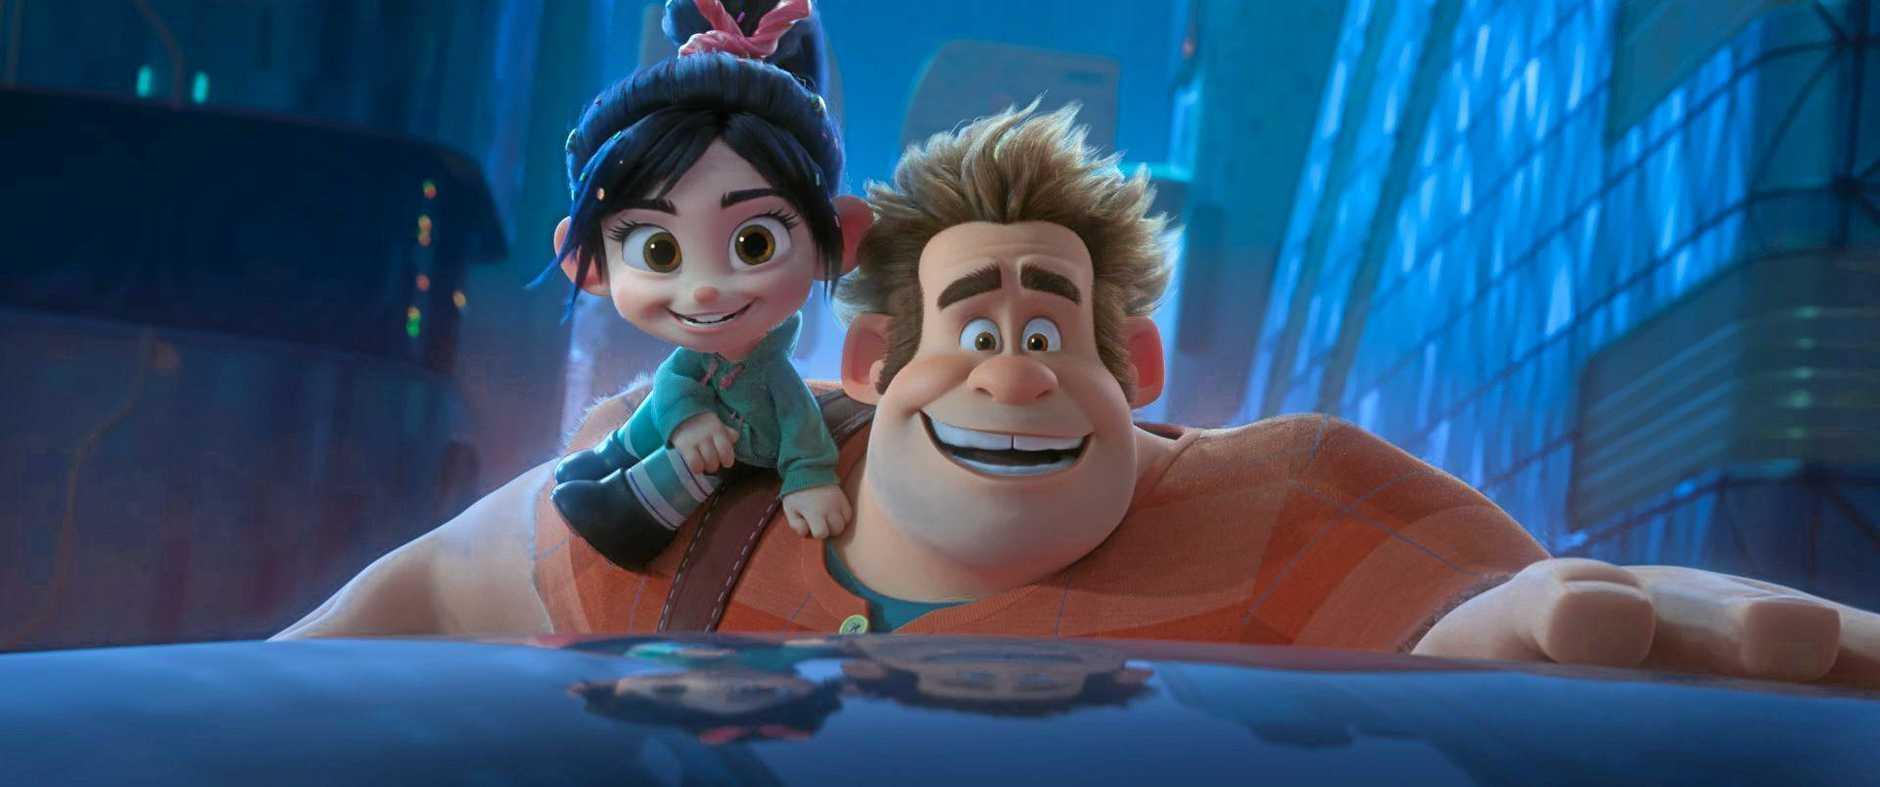 The characters Ralph (John C. Reilly) and Vanellope (Sarah Silverman) in a scene from the movie Ralph Breaks the Internet. Supplied by Disney.